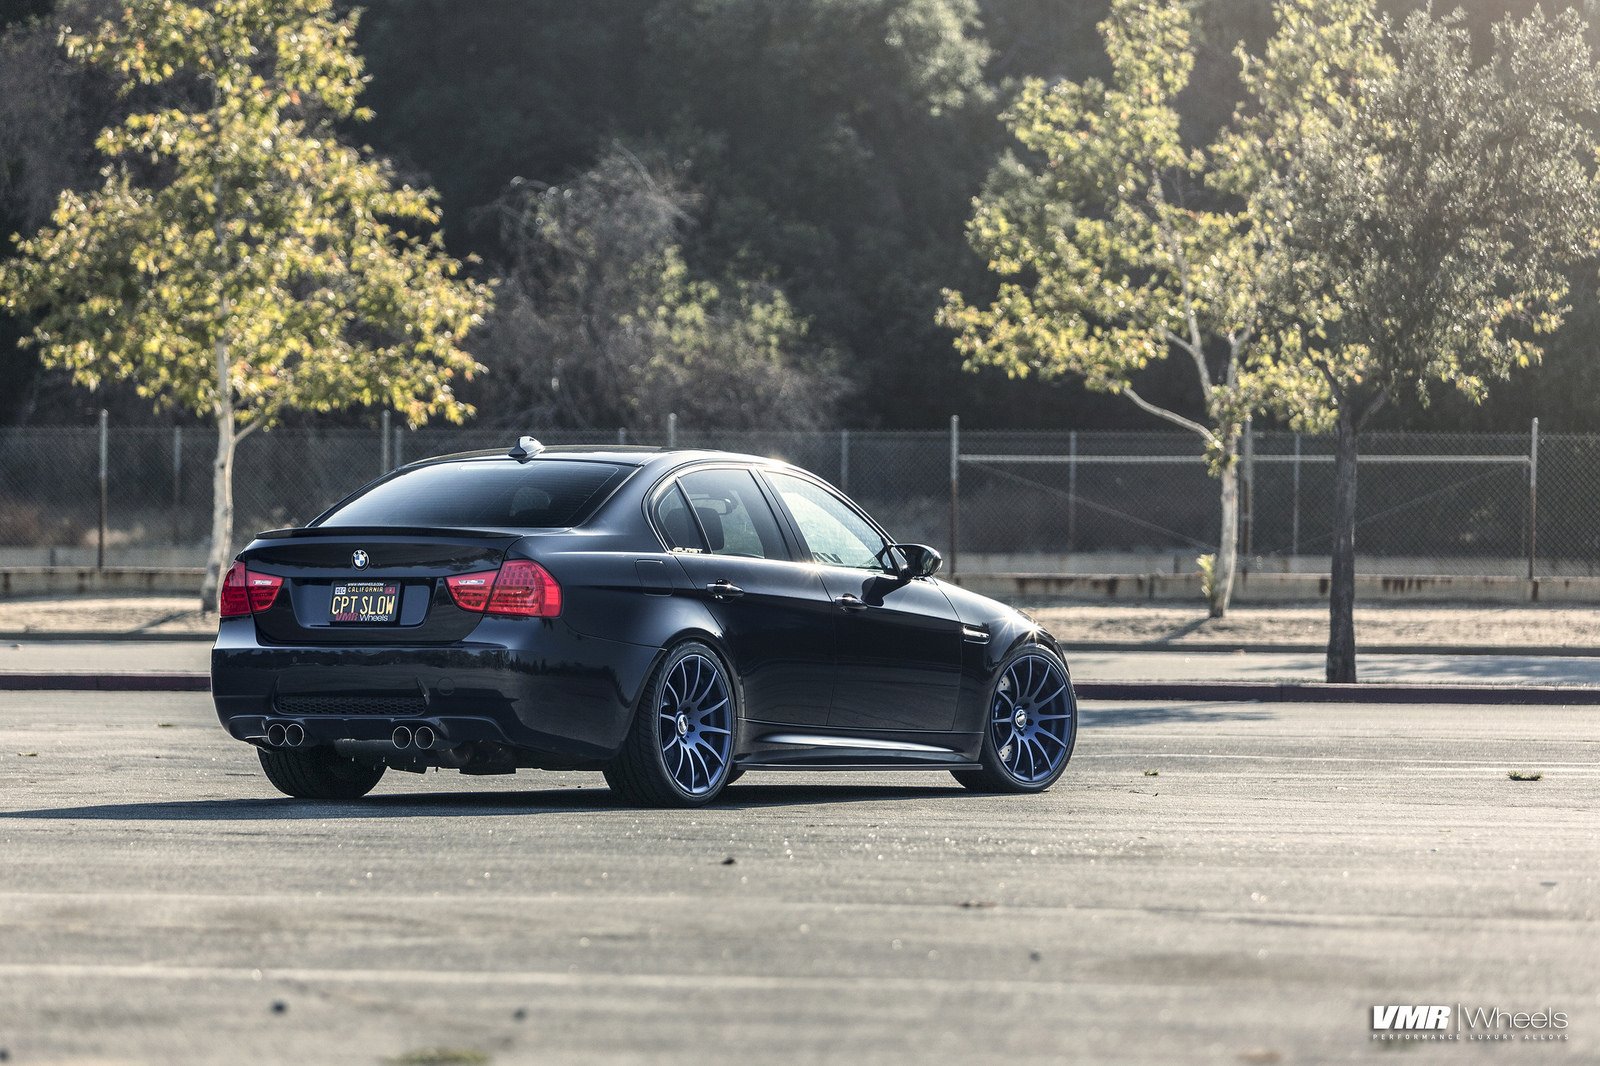 e90-bmw-m3-onvmr-wheels-8